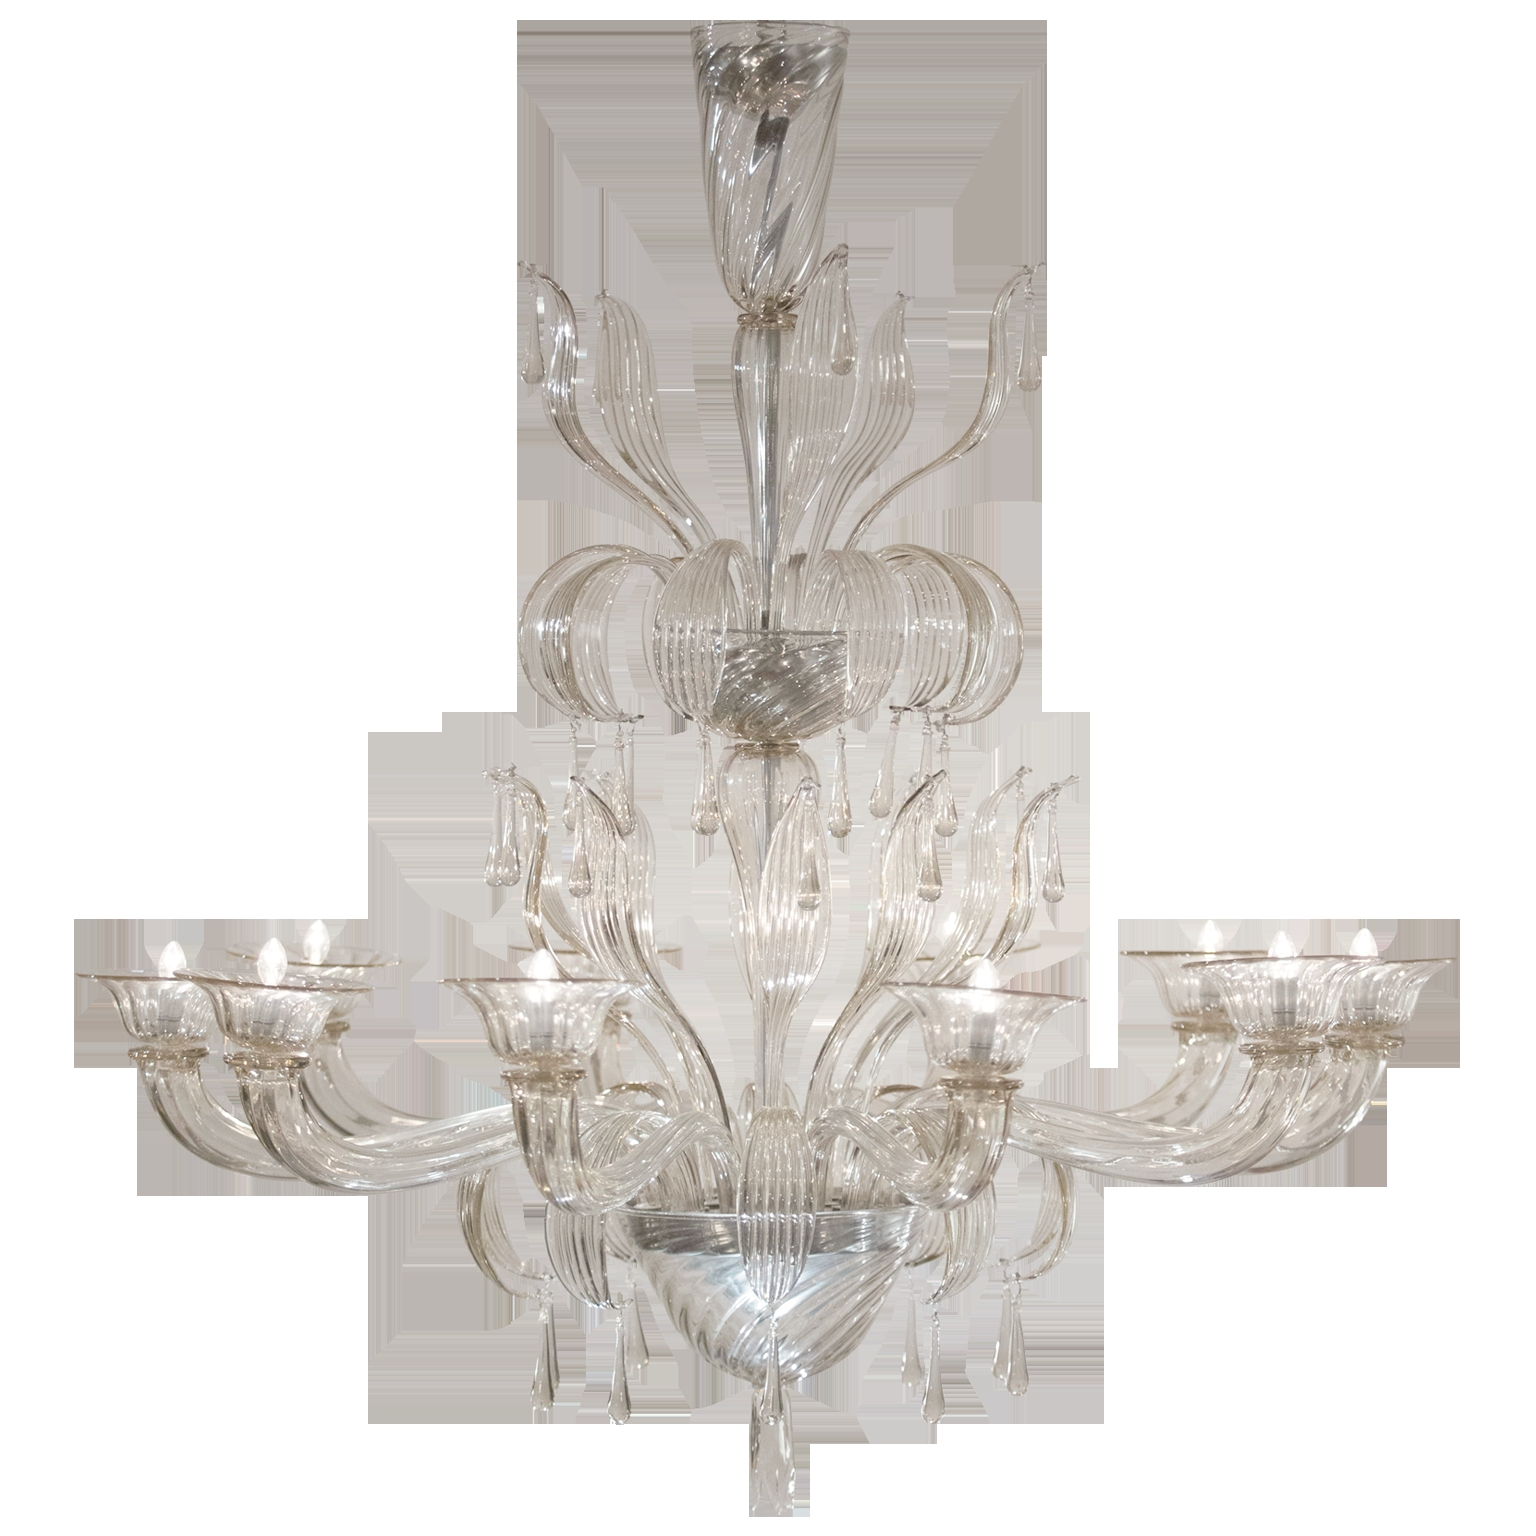 Discount 7 Lights Crystal Chandeliermodern Glass Chandelier In Intended For Clear Glass Chandeliers (Image 13 of 25)